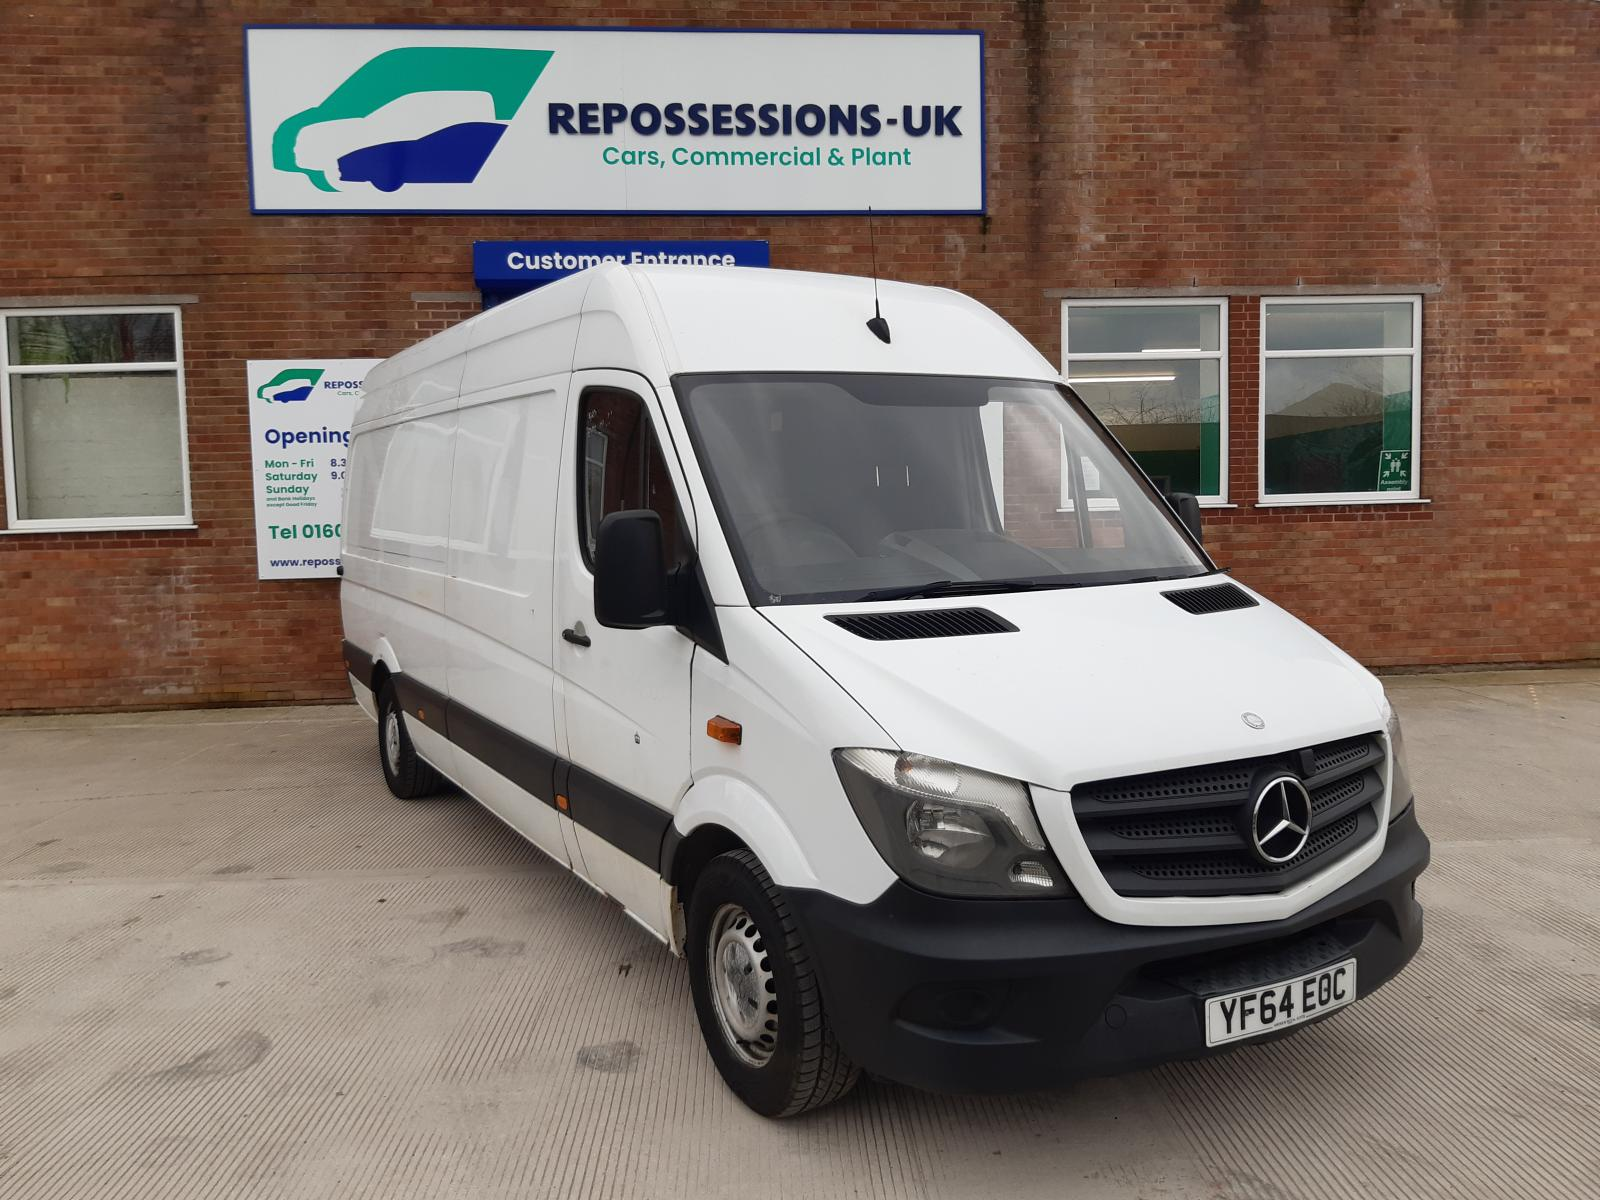 2015 MERCEDES SPRINTER MK2 (906 NCV3) 2006 TO 2018 310 CDI LWB